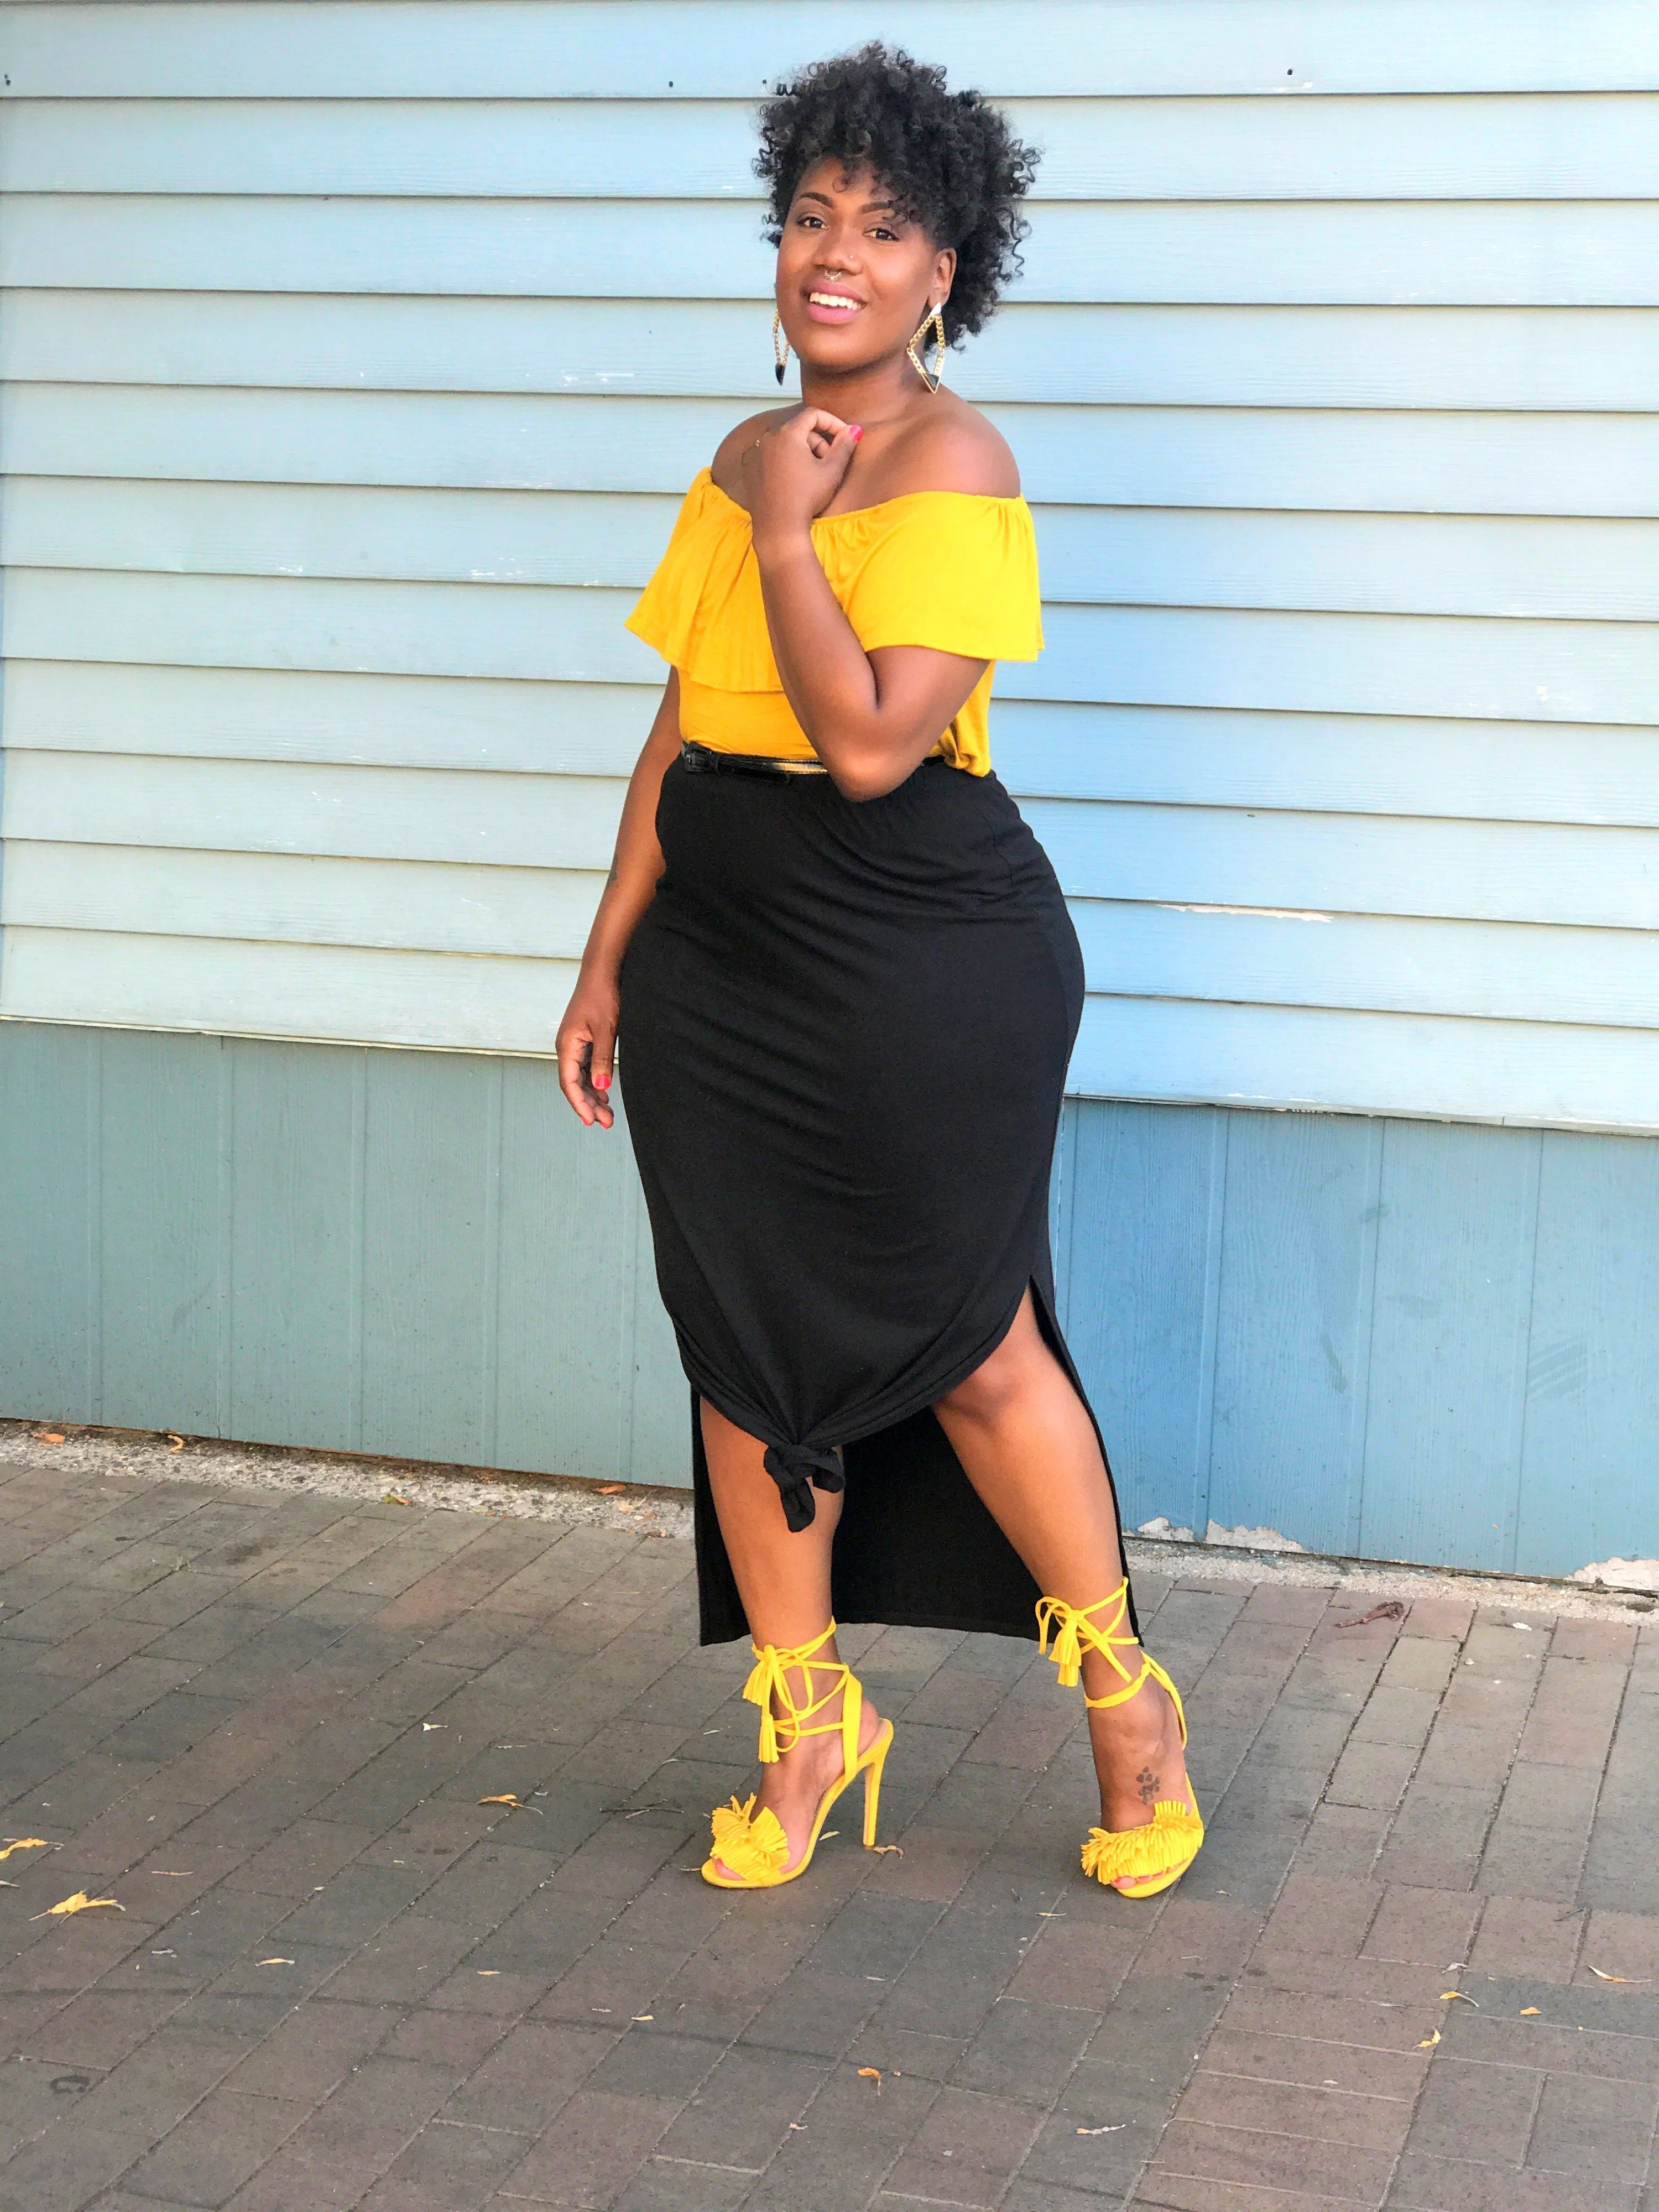 Ruffle Tops and Fringe Shoes. Fashion for plus size women